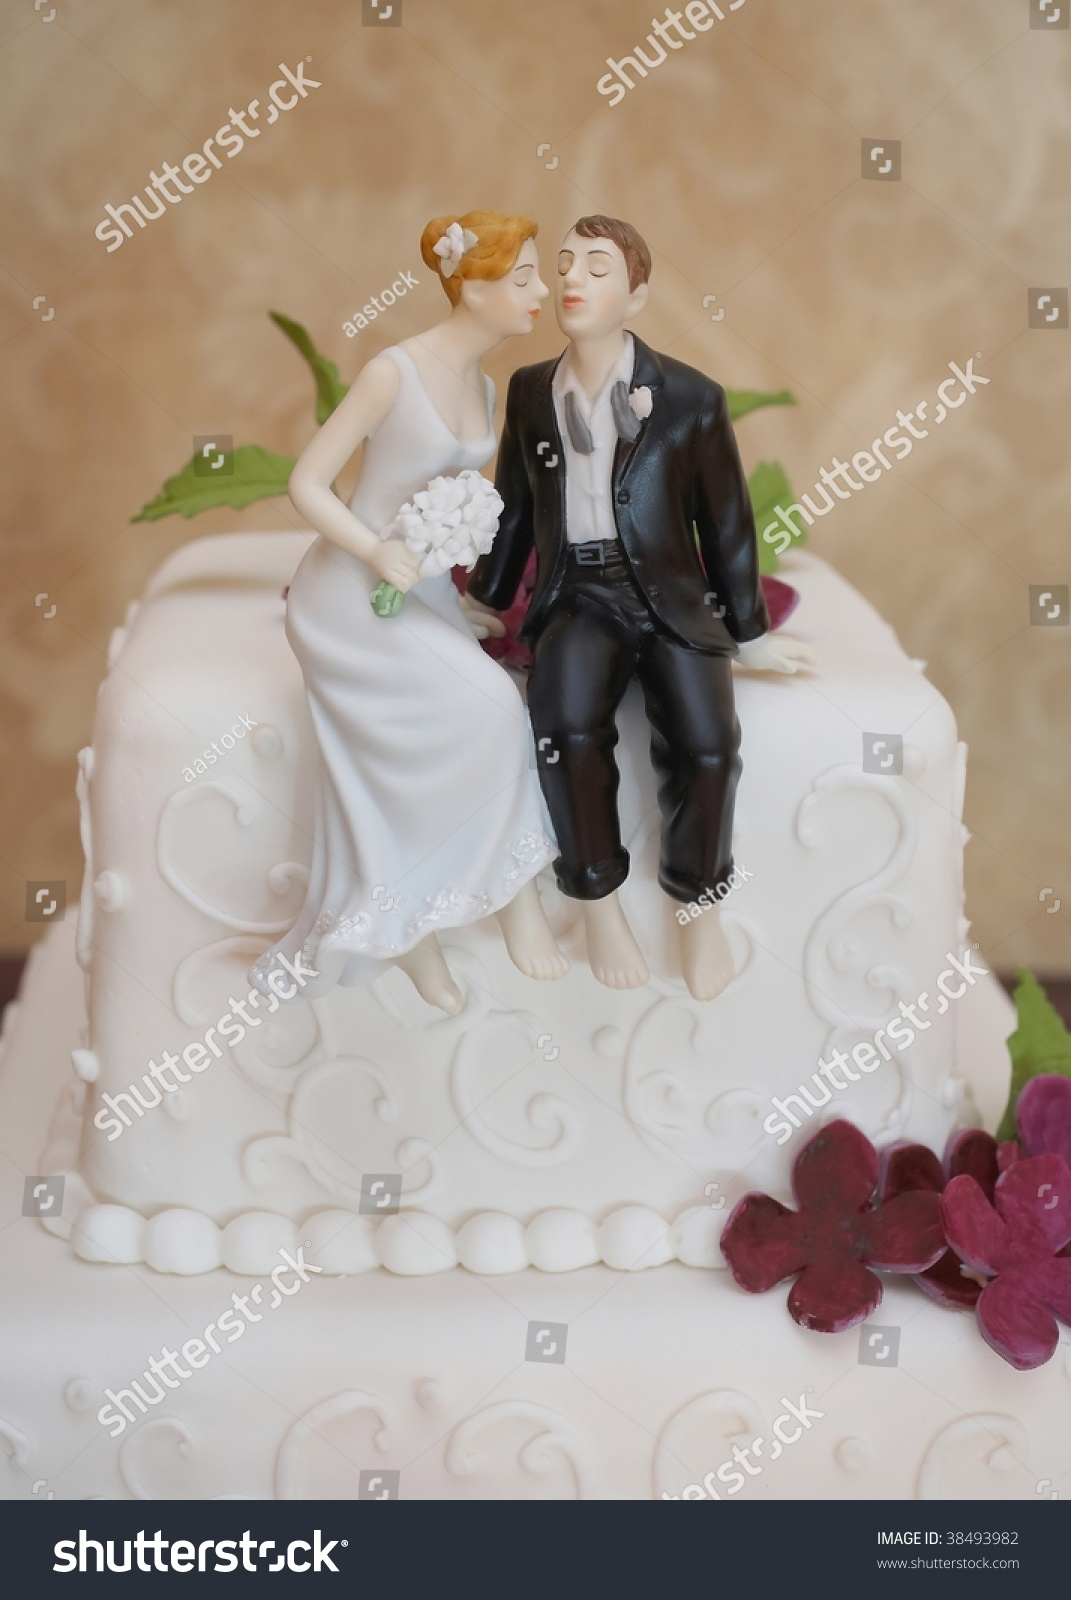 Closeup Of Wedding Cake Topper Figurines At Reception